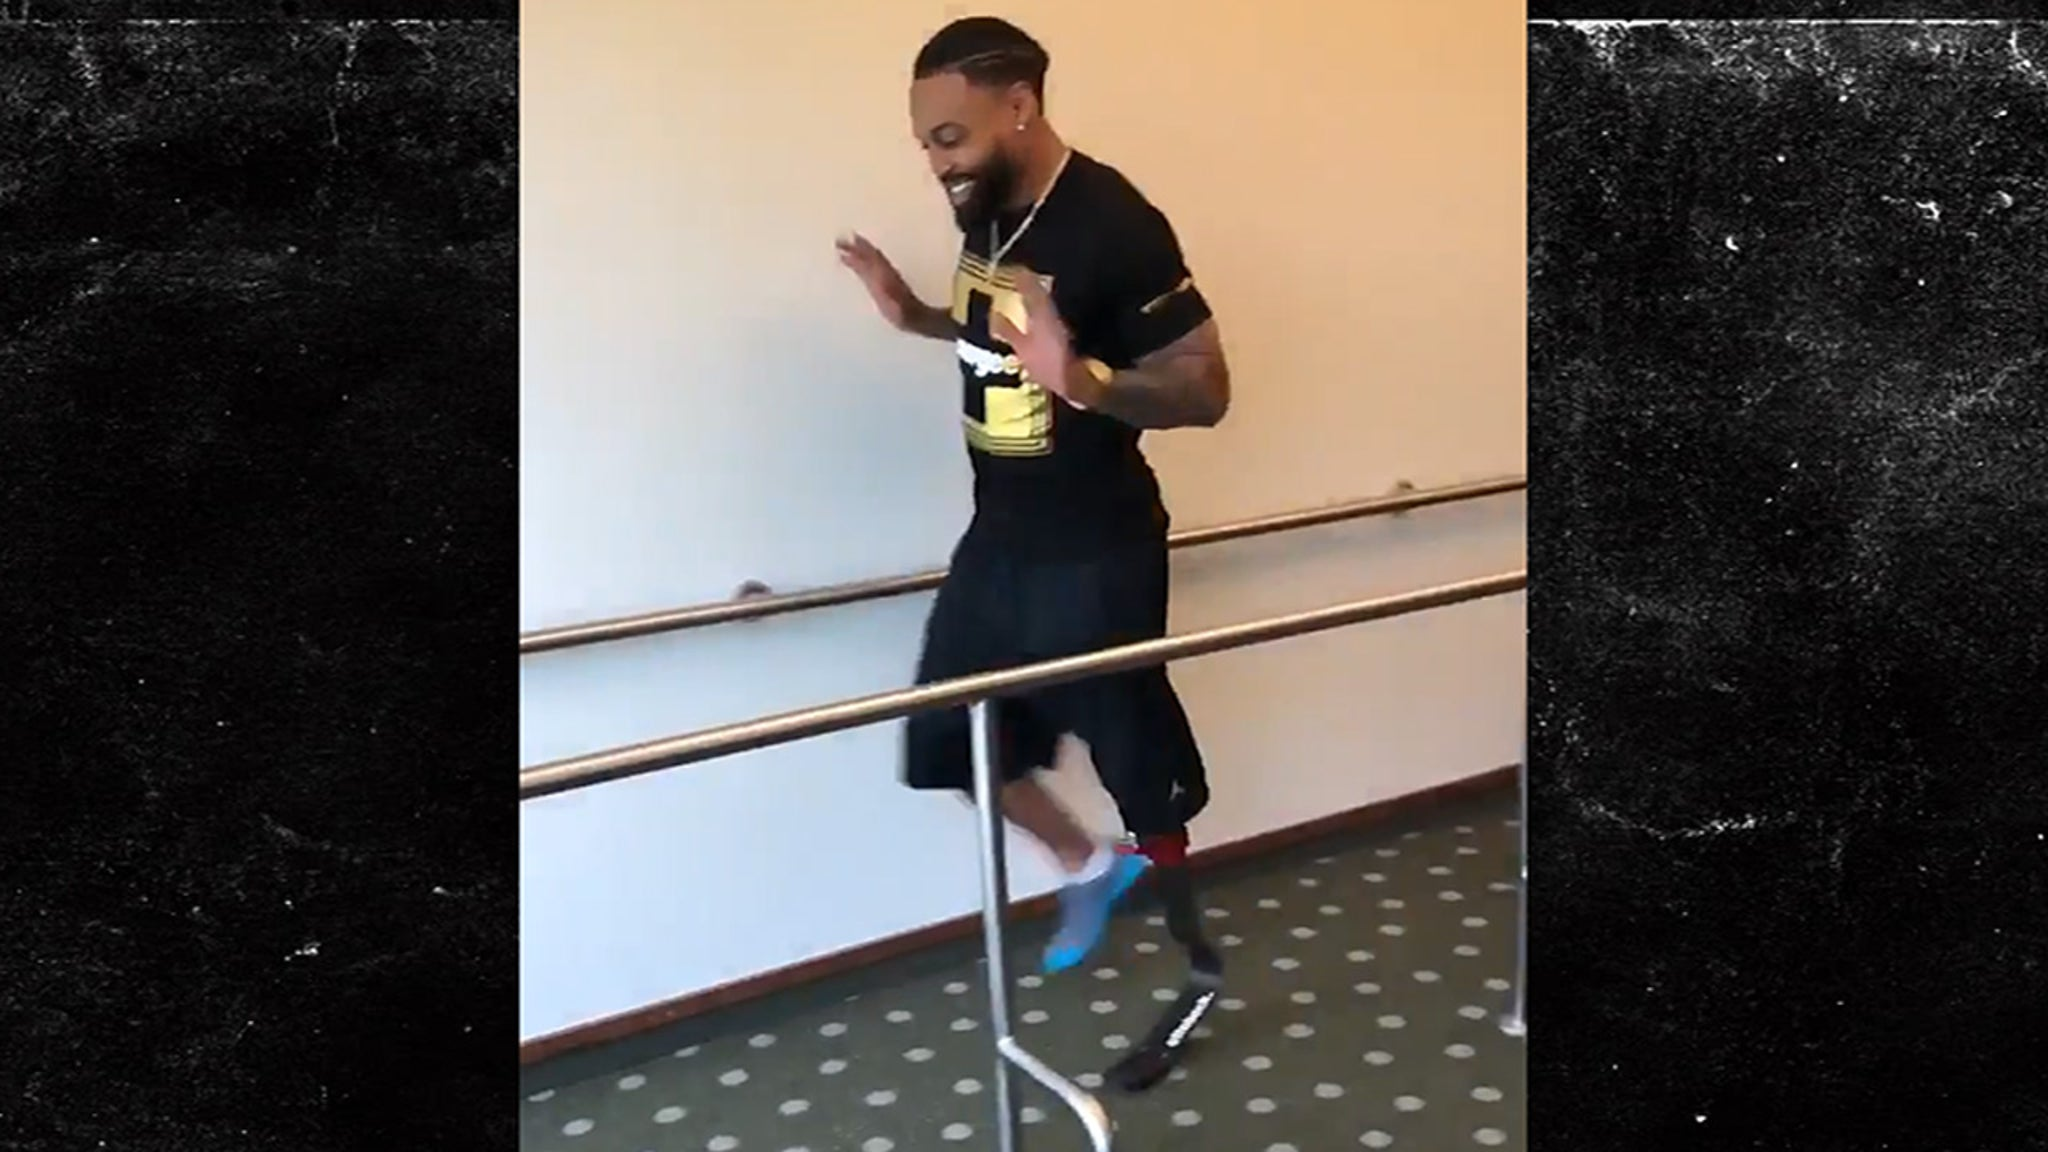 Ex-NFL RB Isaiah Pead Takes First Steps in Prosthetic Running Leg